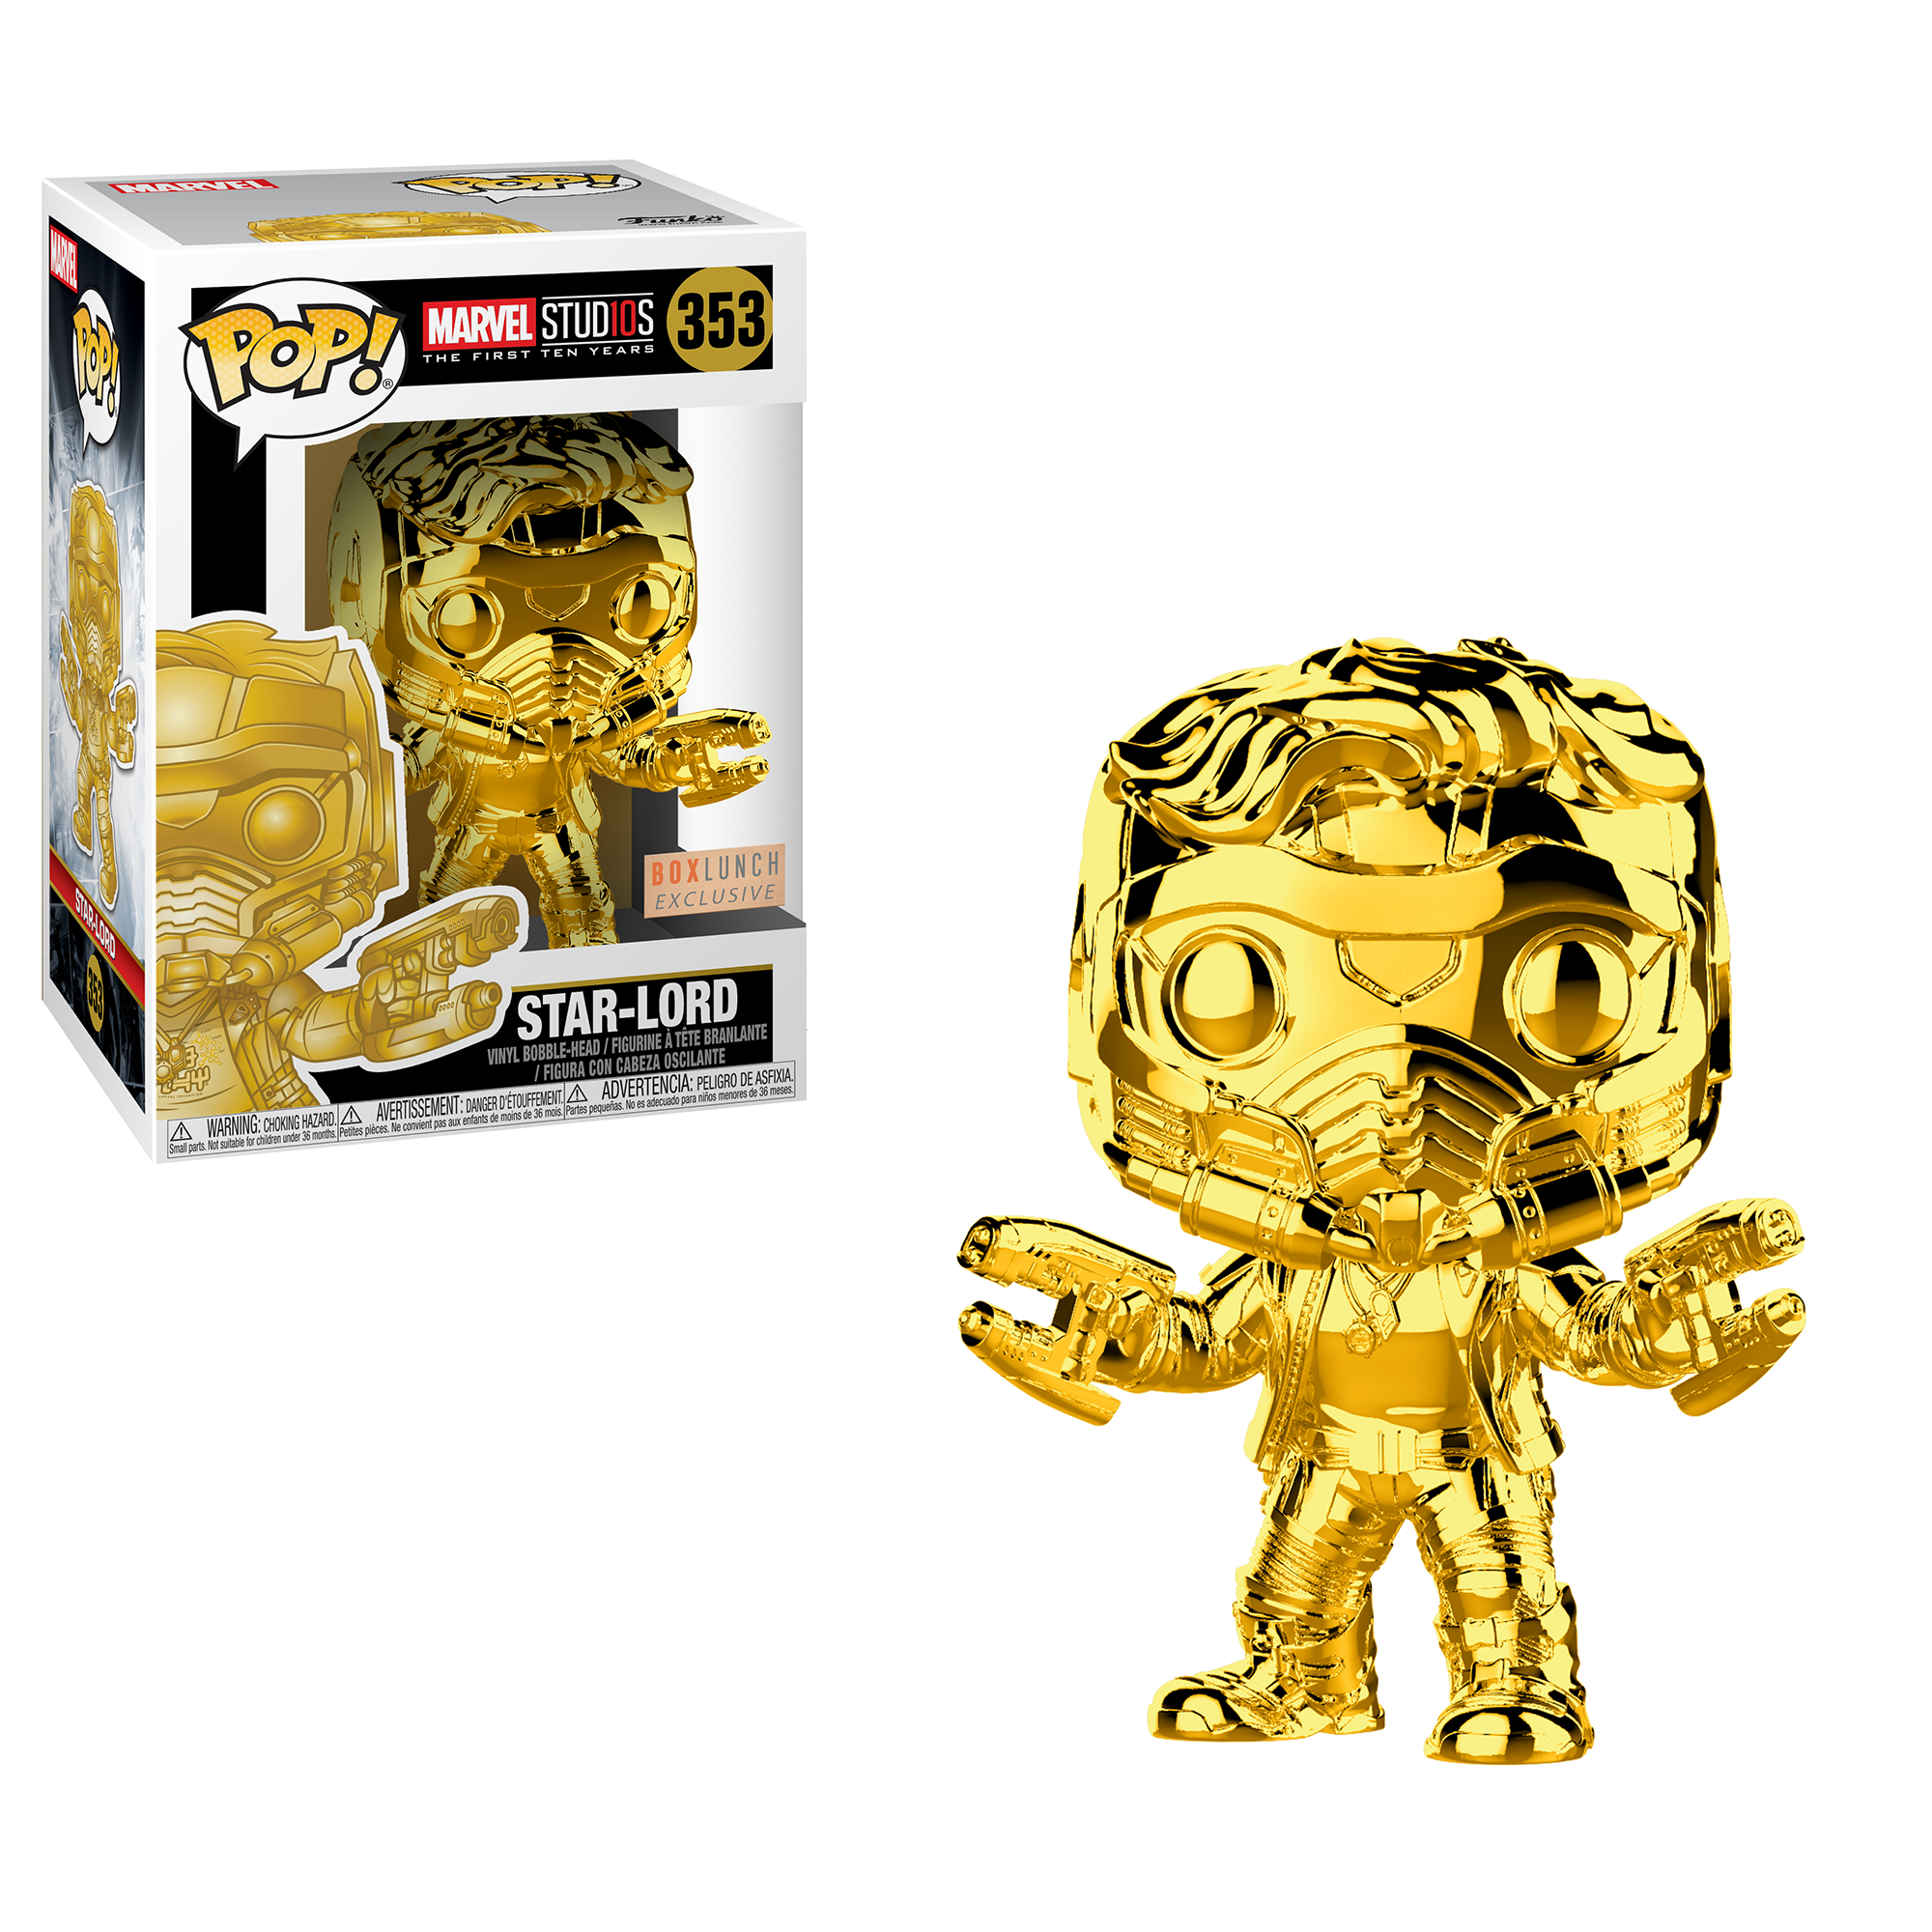 New Marvel Studios 10 Chrome Pop Coming From Funko Funko Pop Star Lord Funko